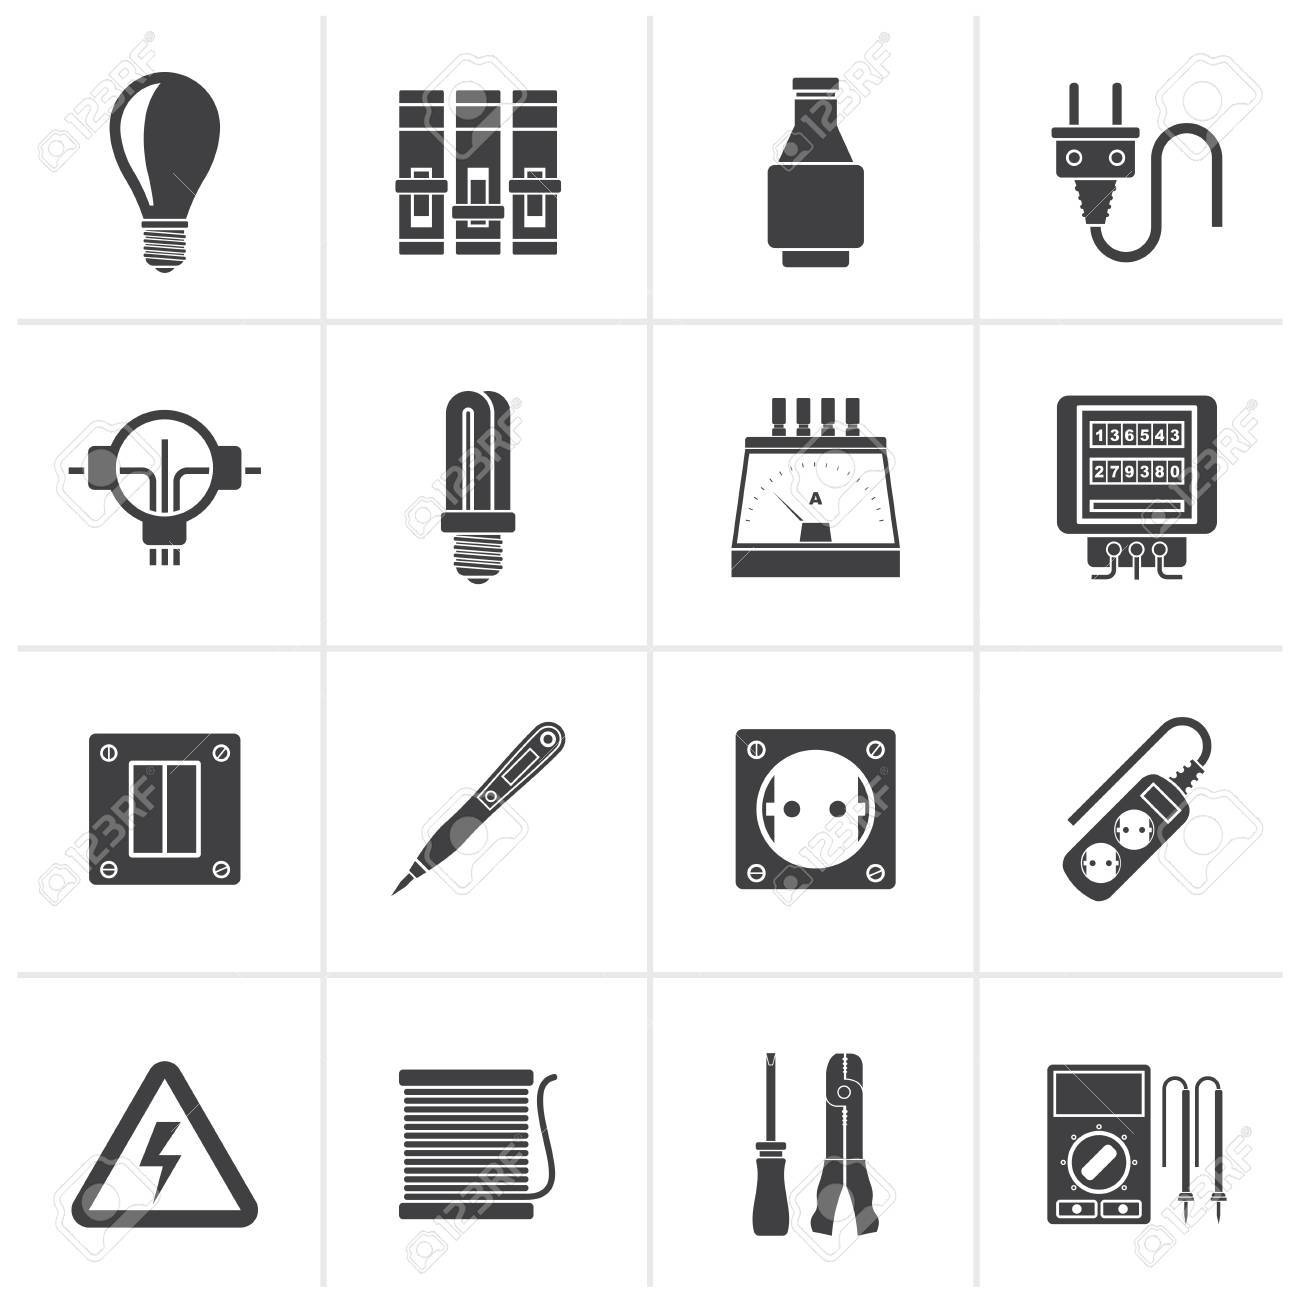 Black Electrical Devices And Equipment Icons Vector Icon Set